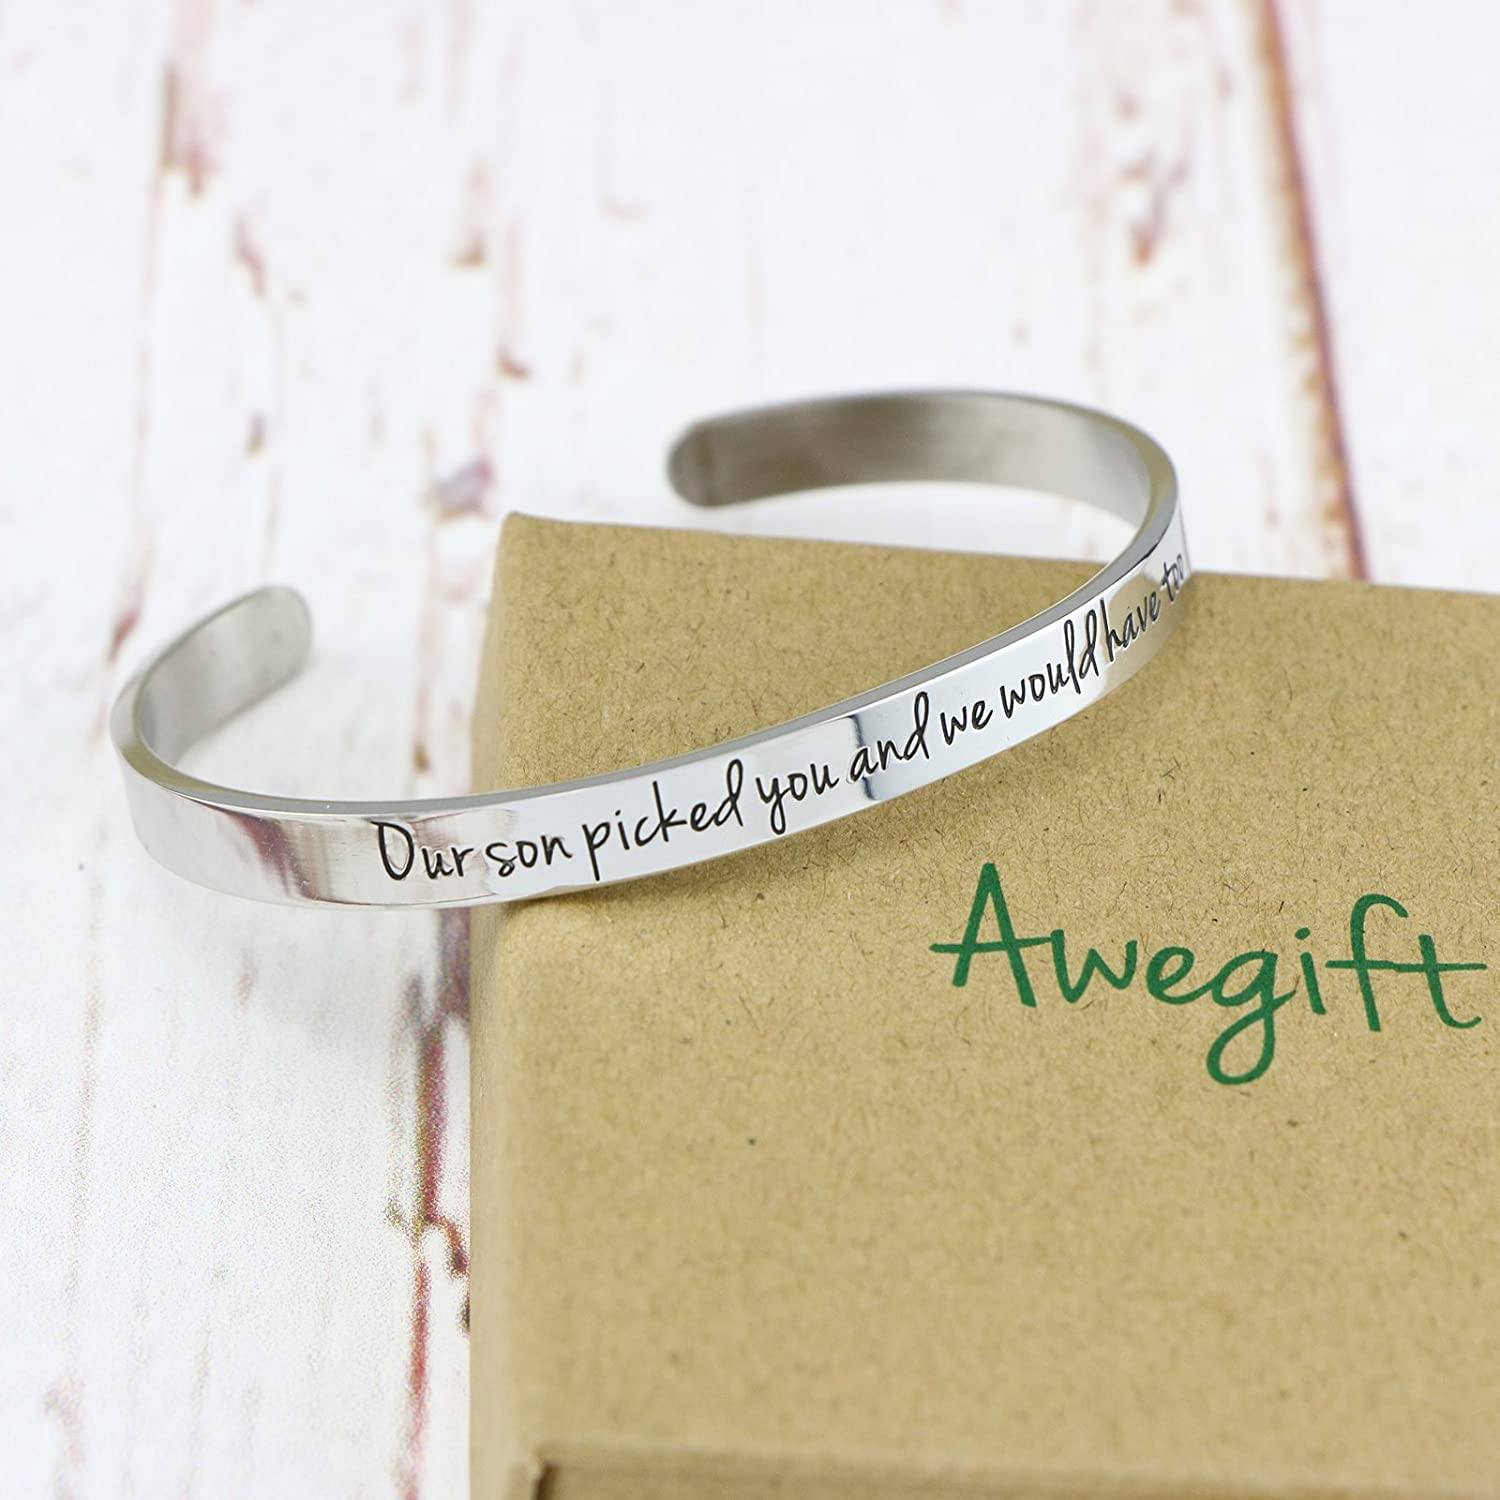 Awegift Daughter in Law Gift Bangle Bracelet for Girls Our son picked you and we would have too